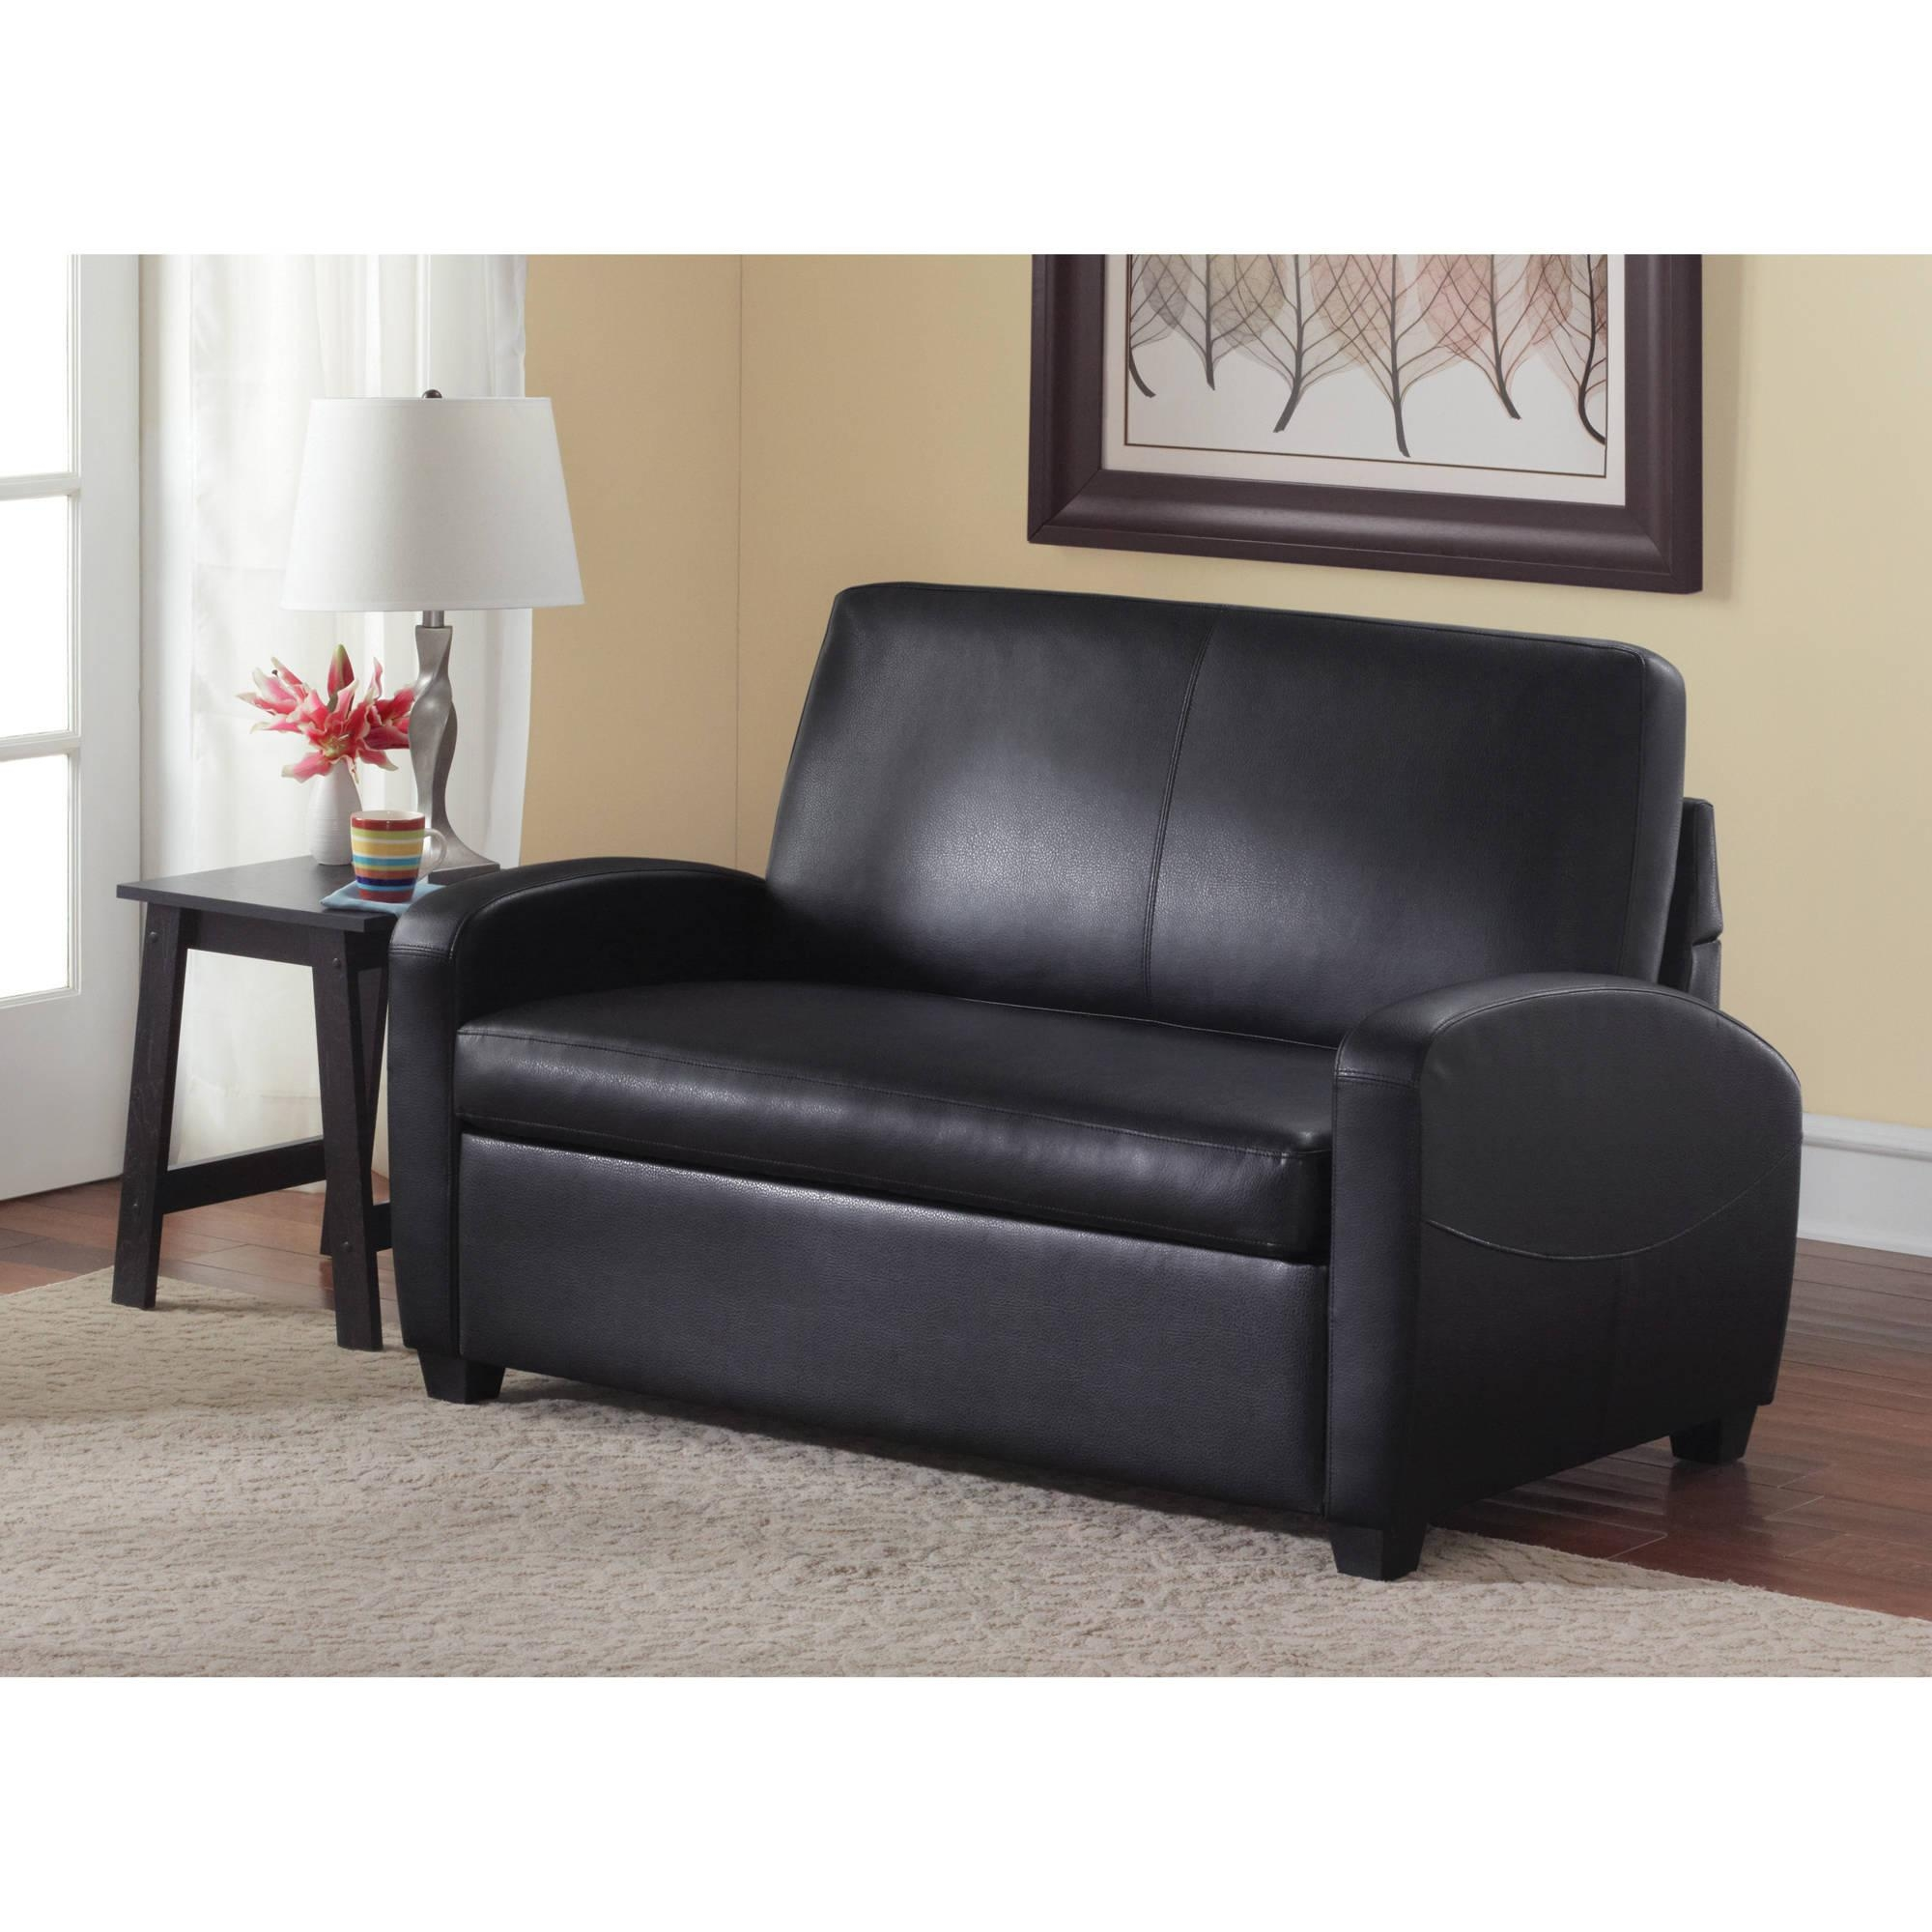 Mainstays Sofa Sleeper, Black – Walmart In Mainstay Sofas (Image 19 of 20)